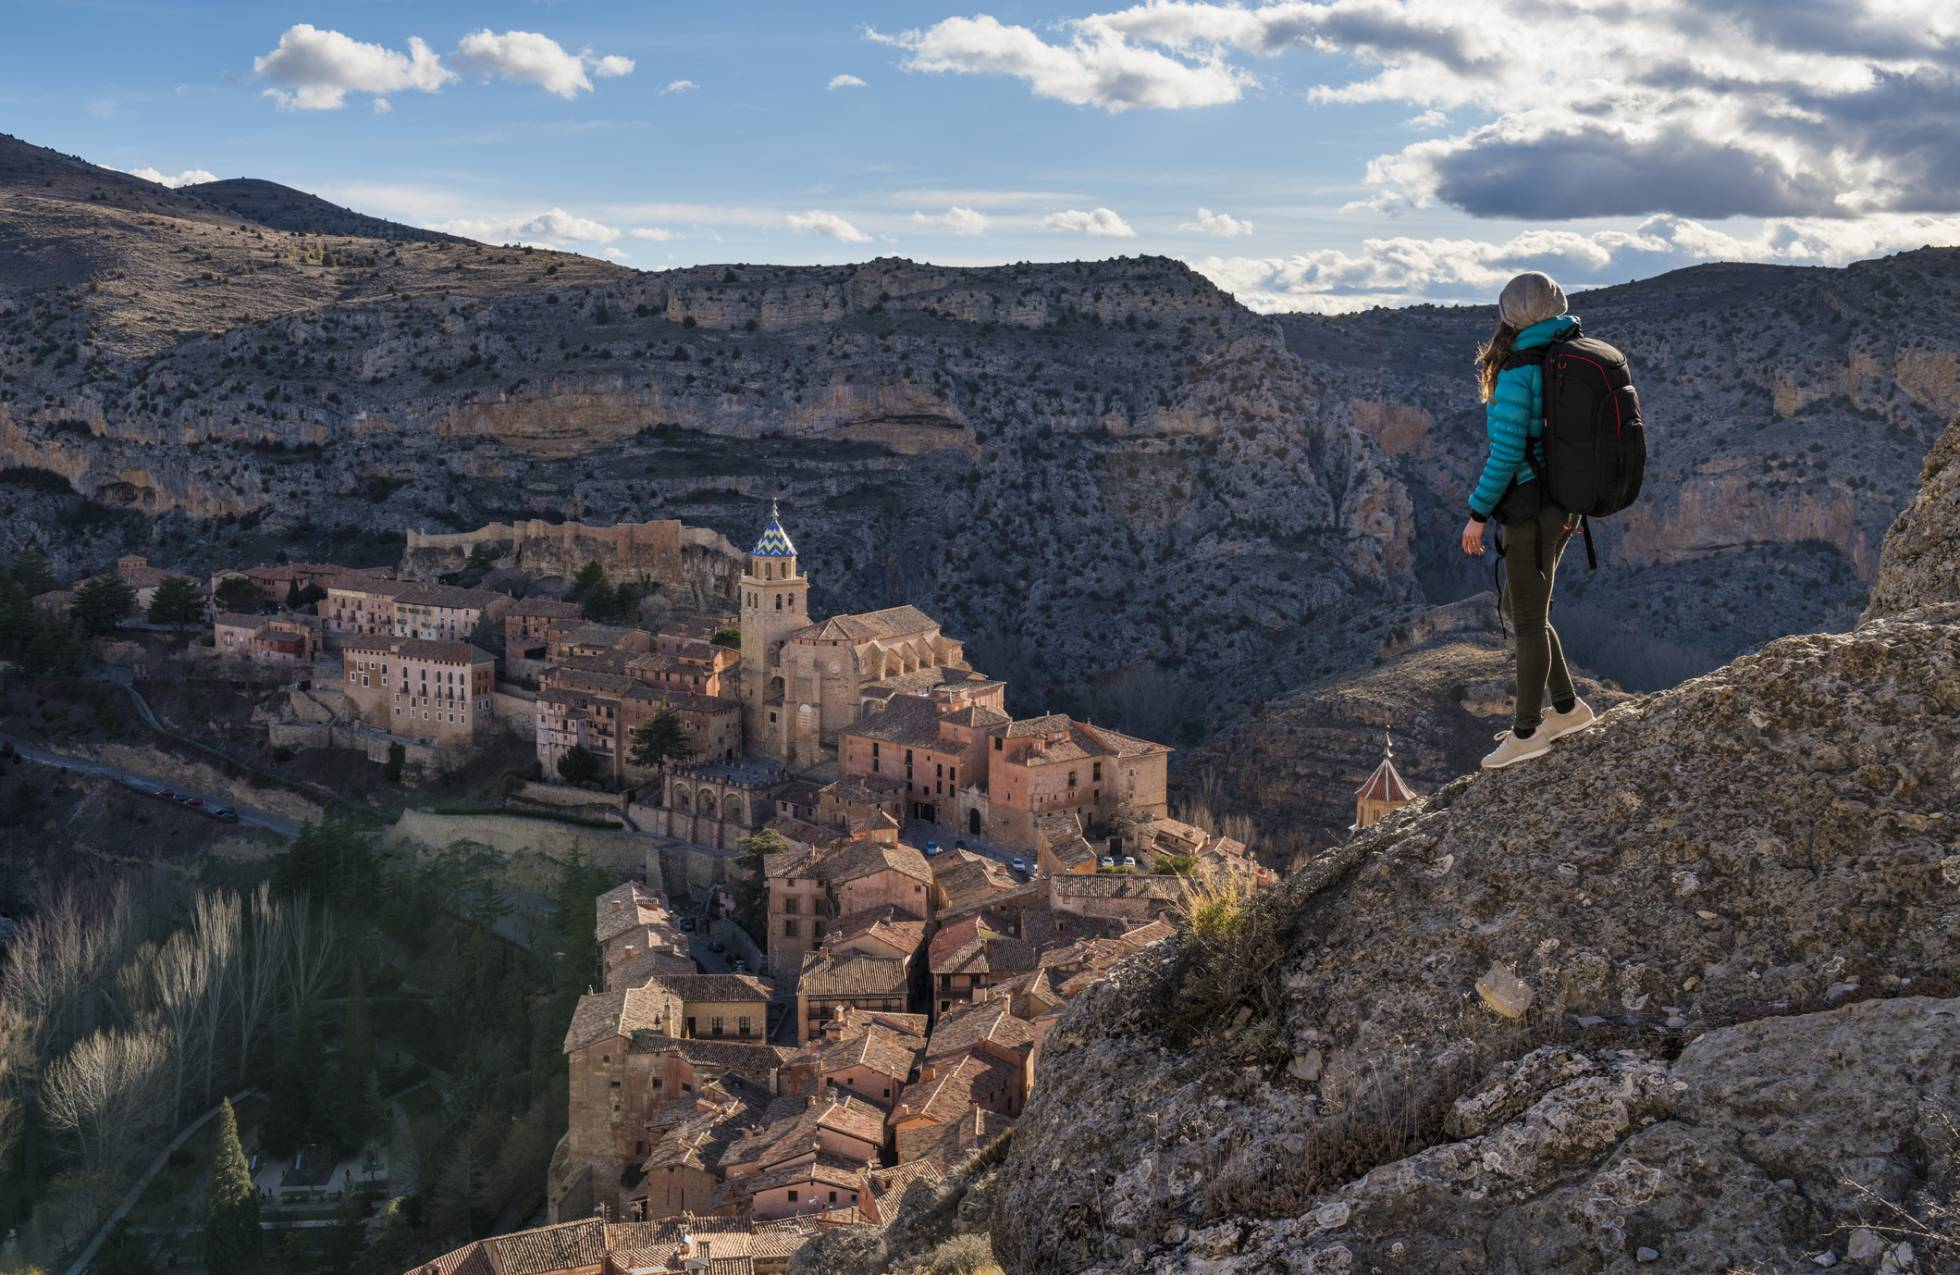 Spain's 30 most beautiful villages, as voted for by readers of EL PAÍS